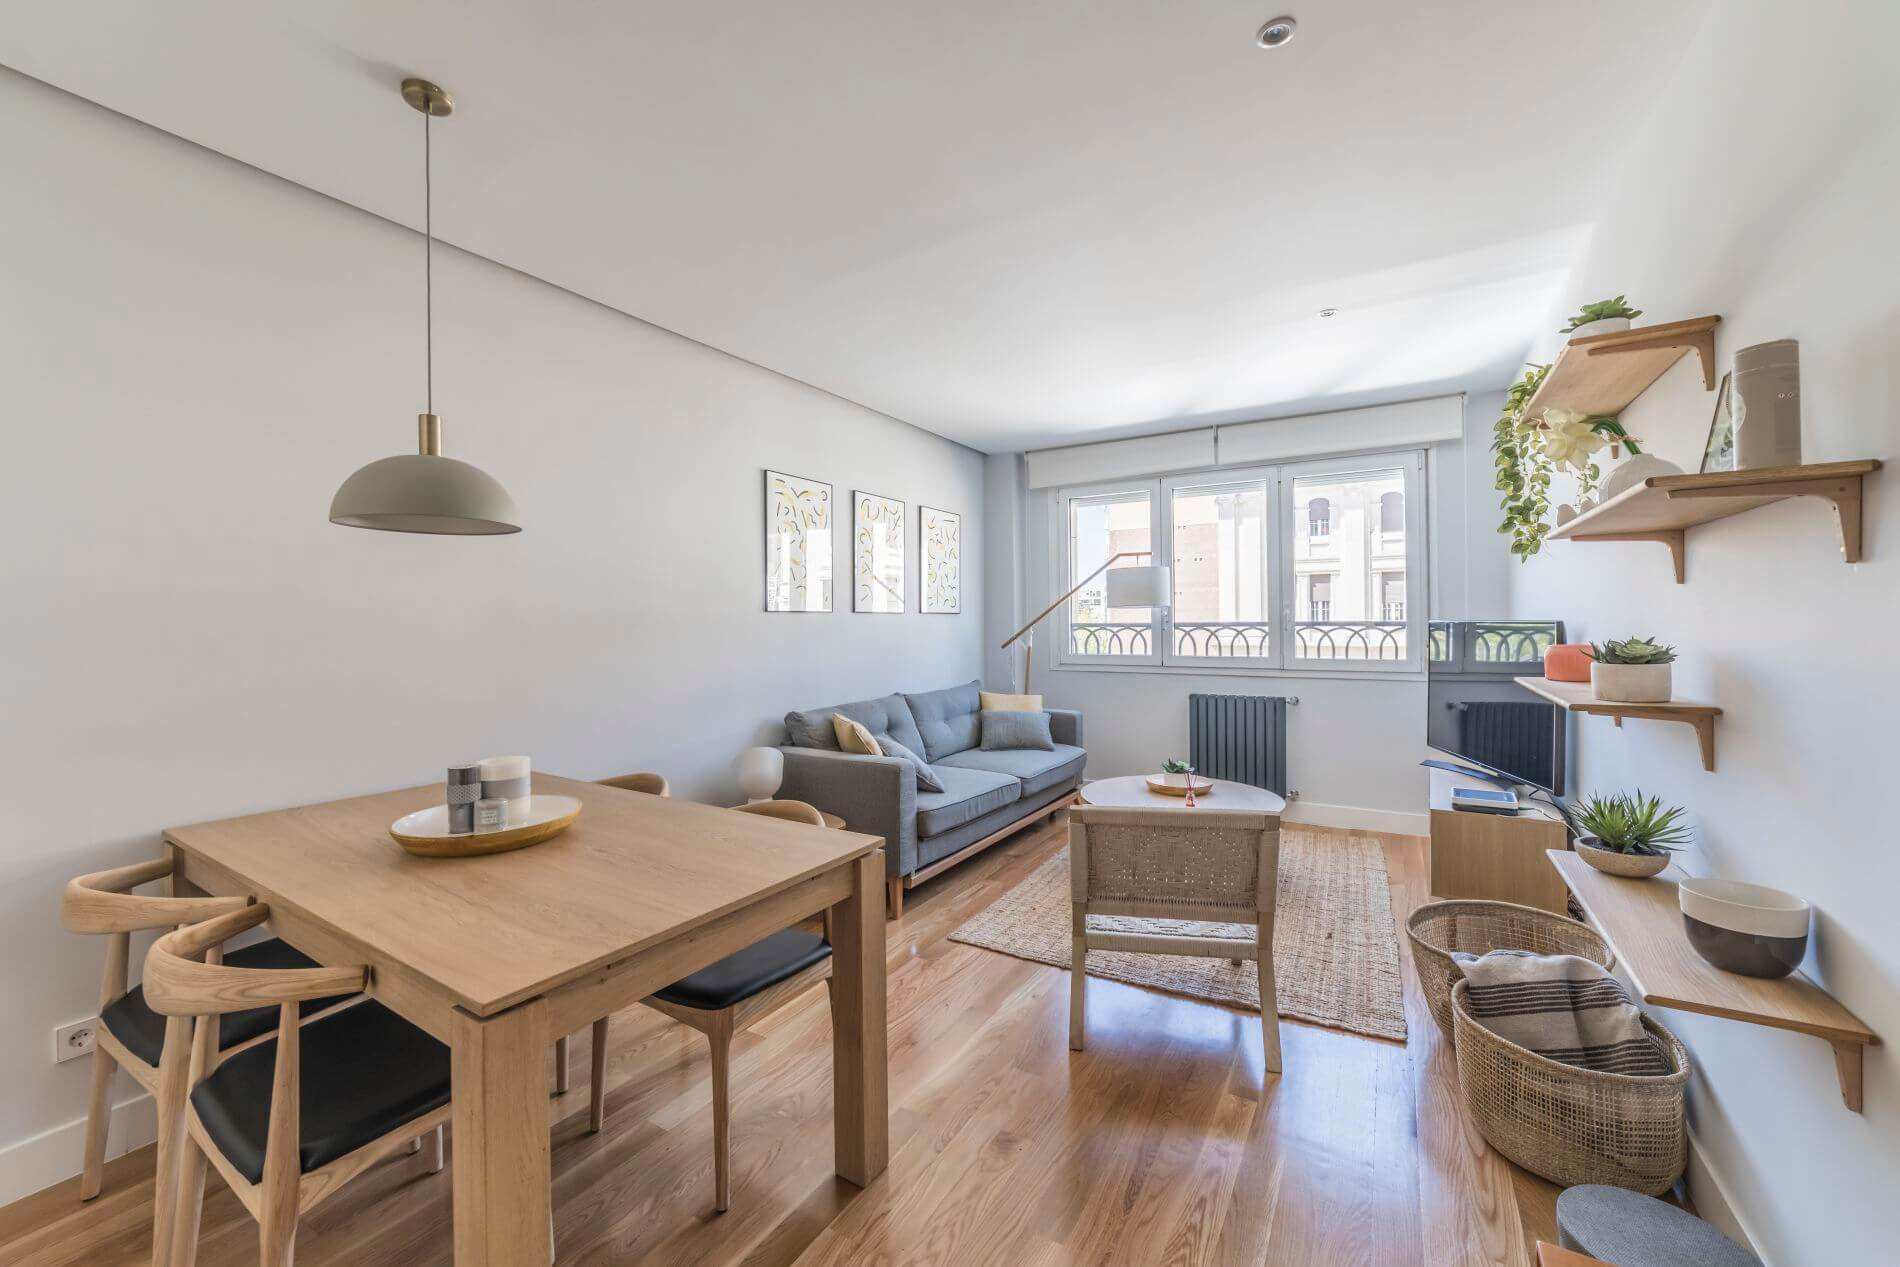 2 bedroom serviced apartment in Madrid for long stays